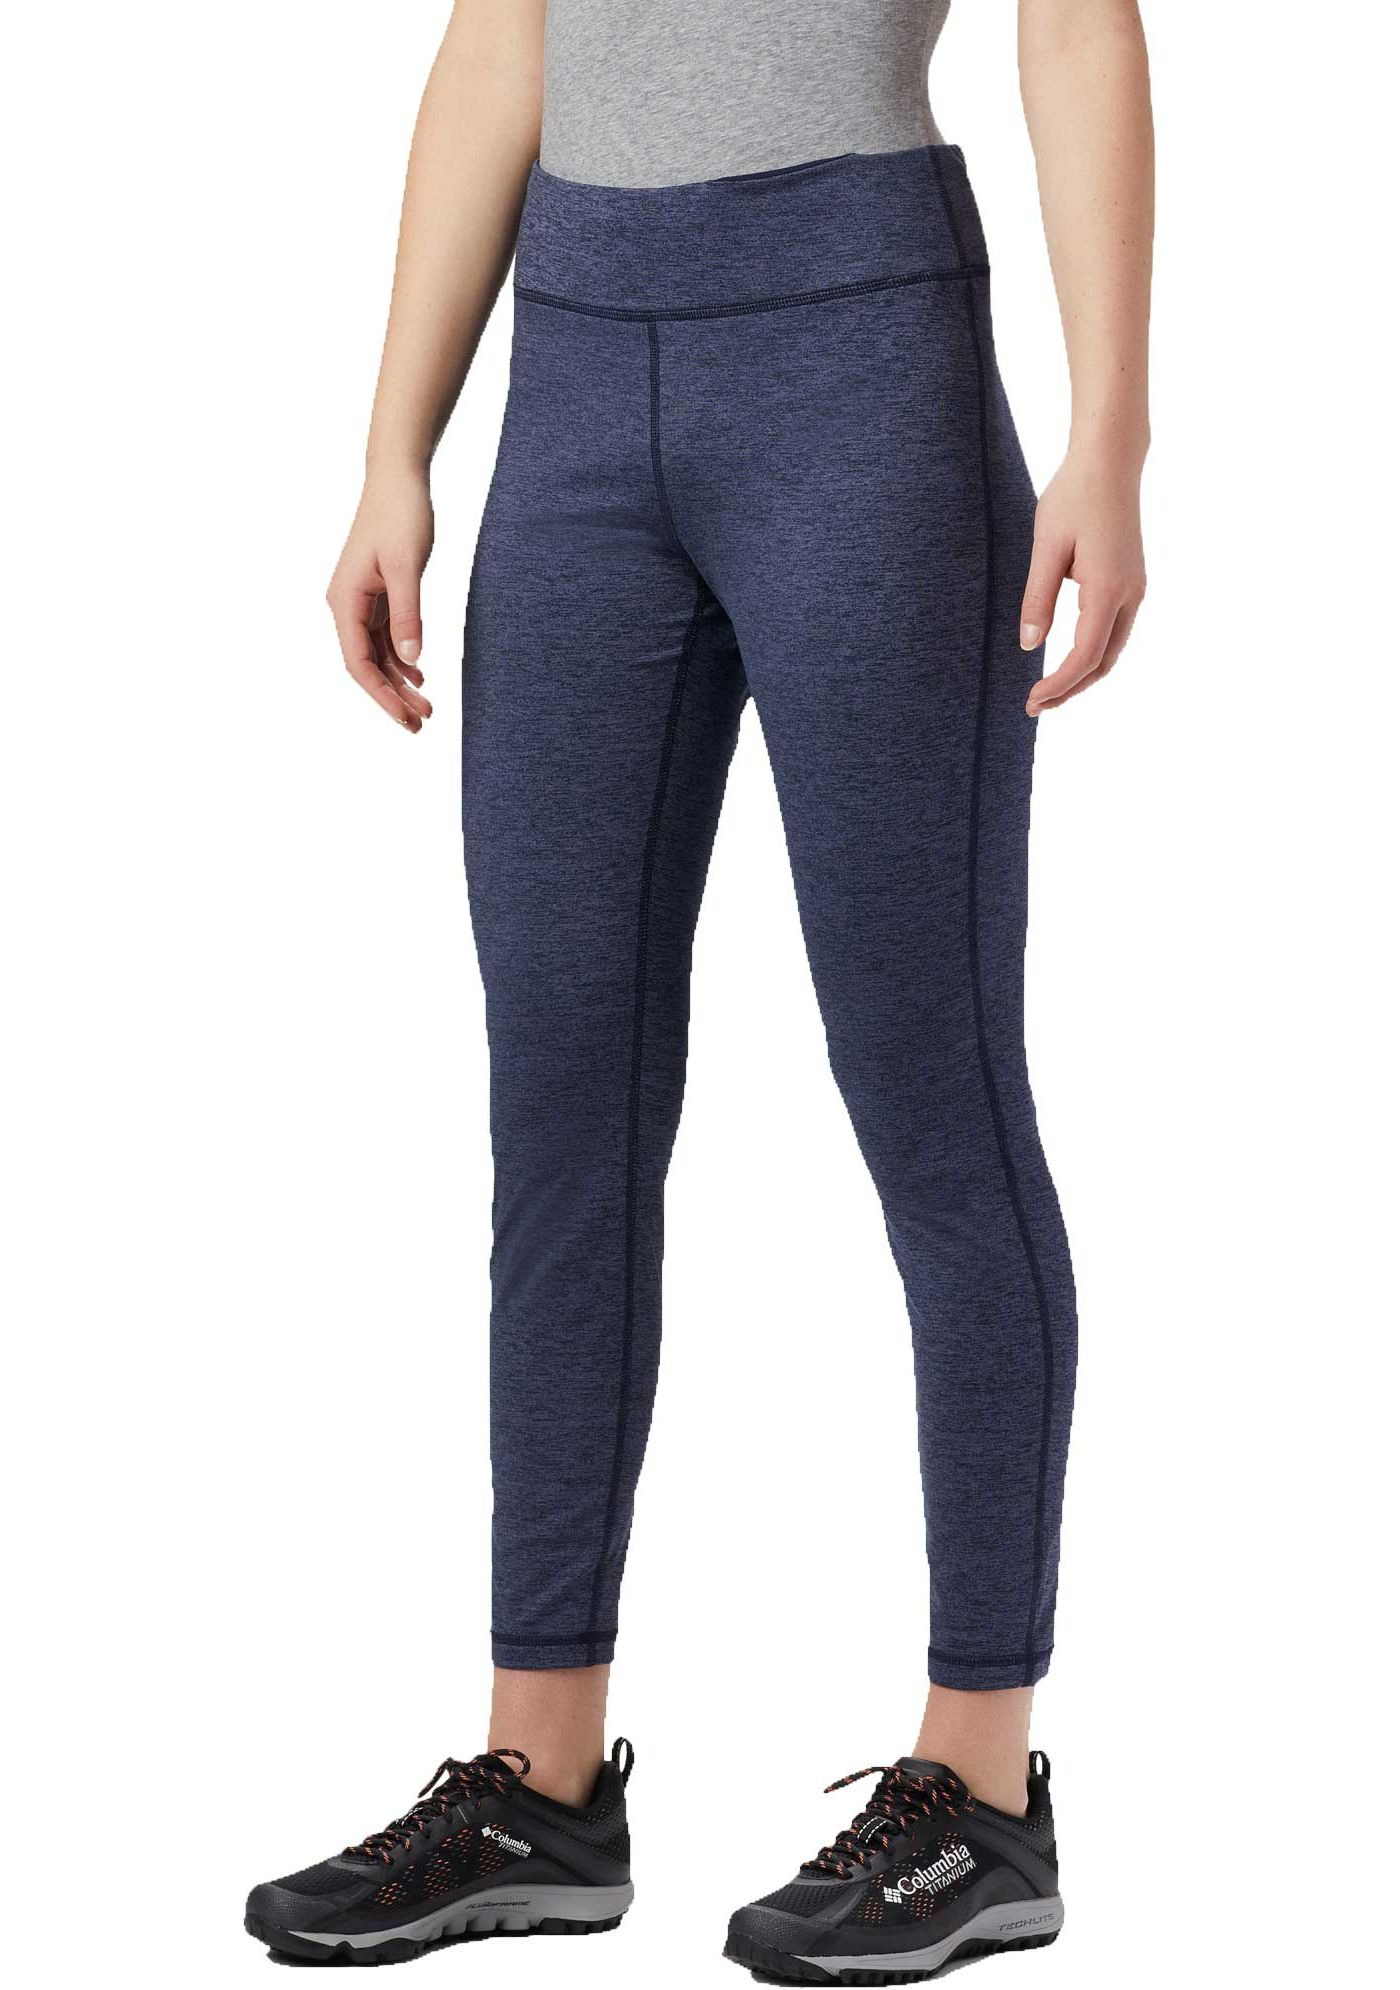 Columbia Women's Northern Comfort Fall High Rise Leggings